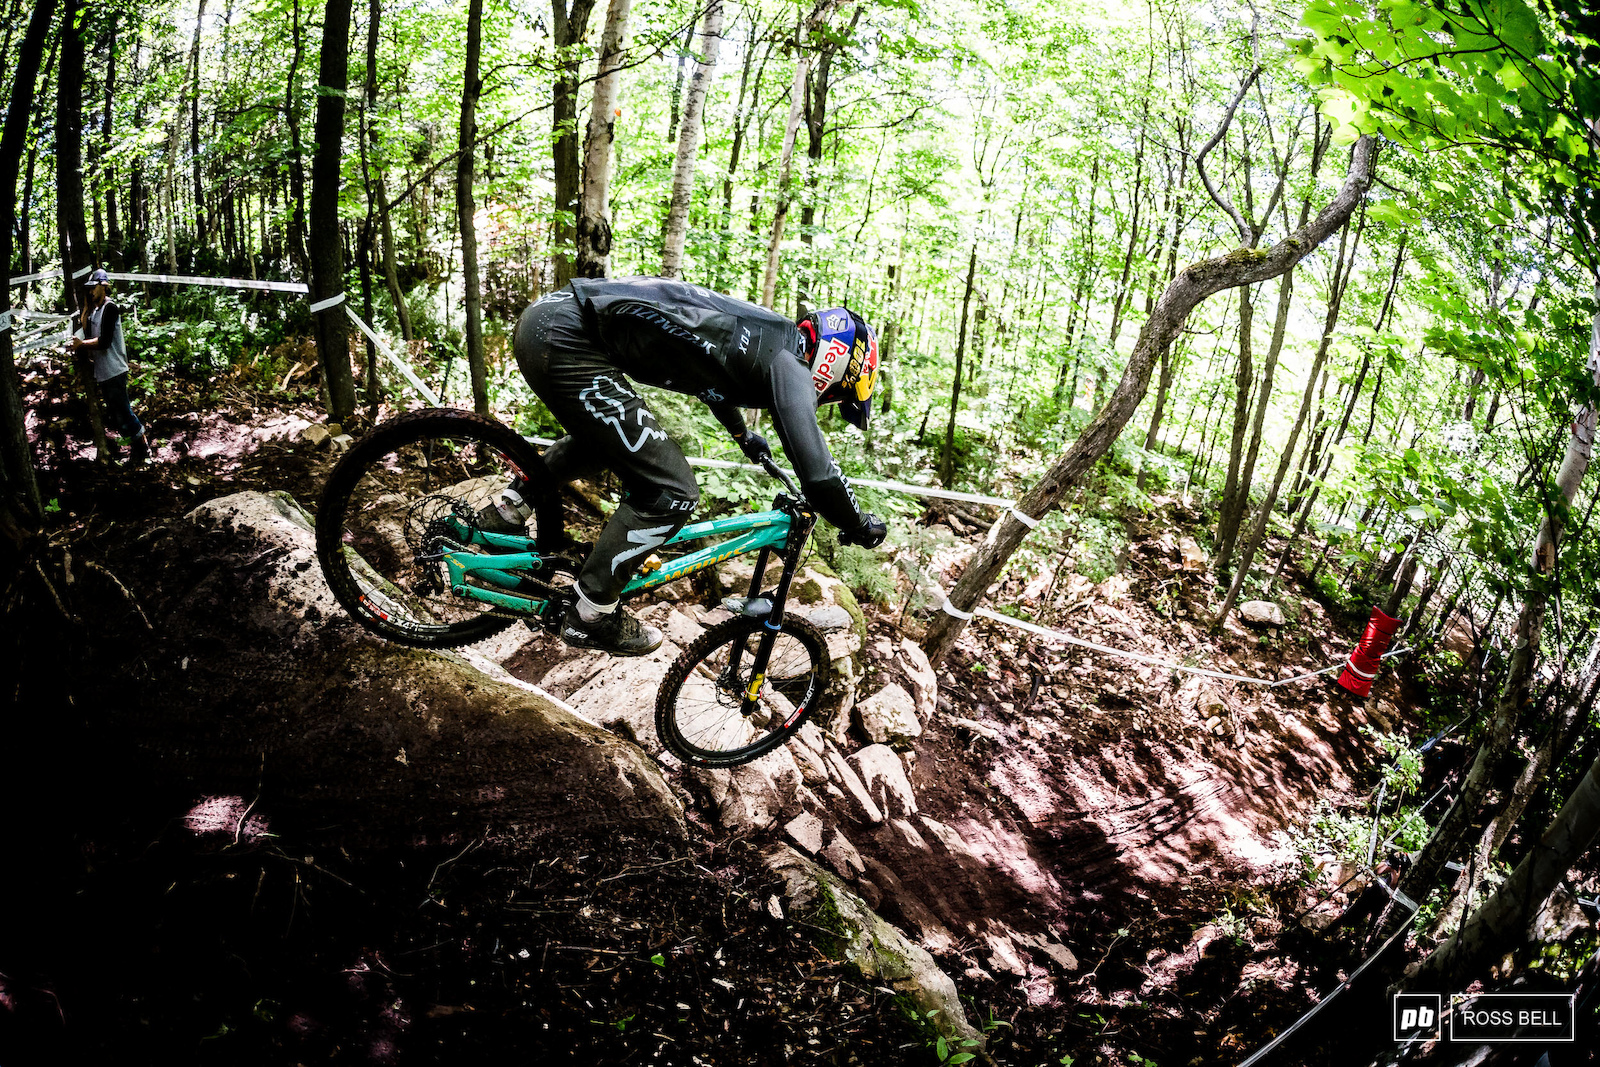 Finn Iles taking the leap off the new rock roll in the woods. The young Canadian is on good form on home soil coming in 9th.